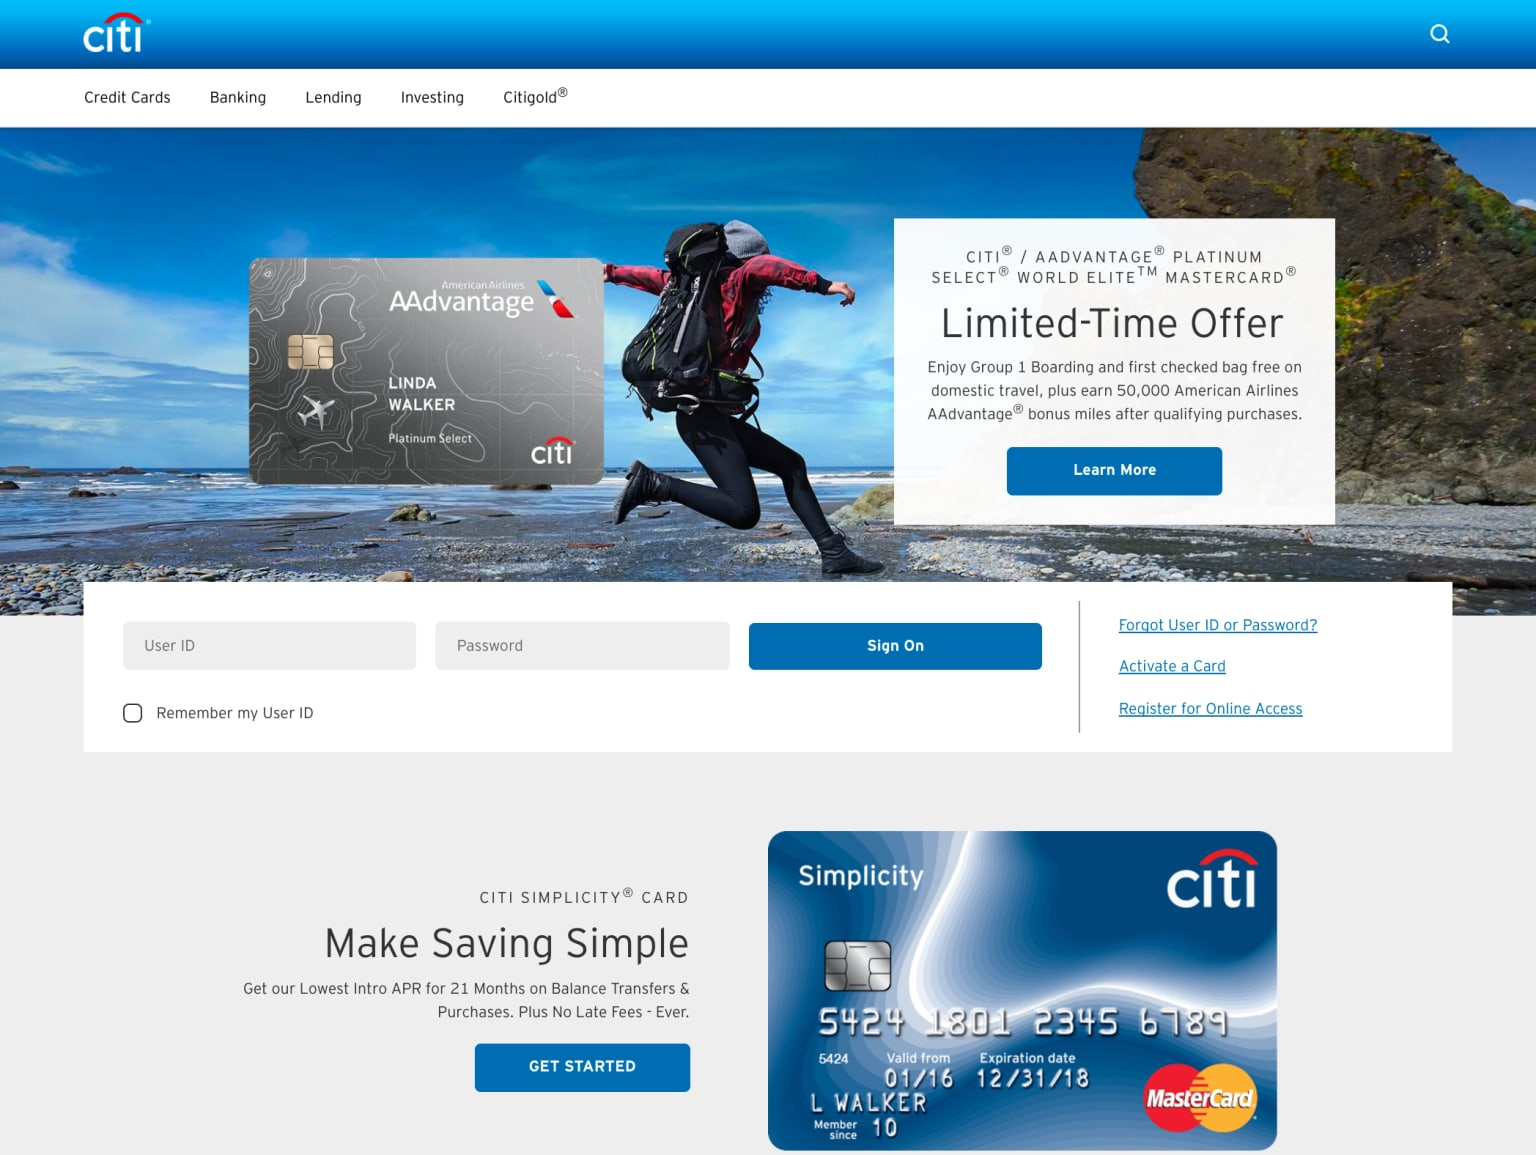 Citi Global Design System